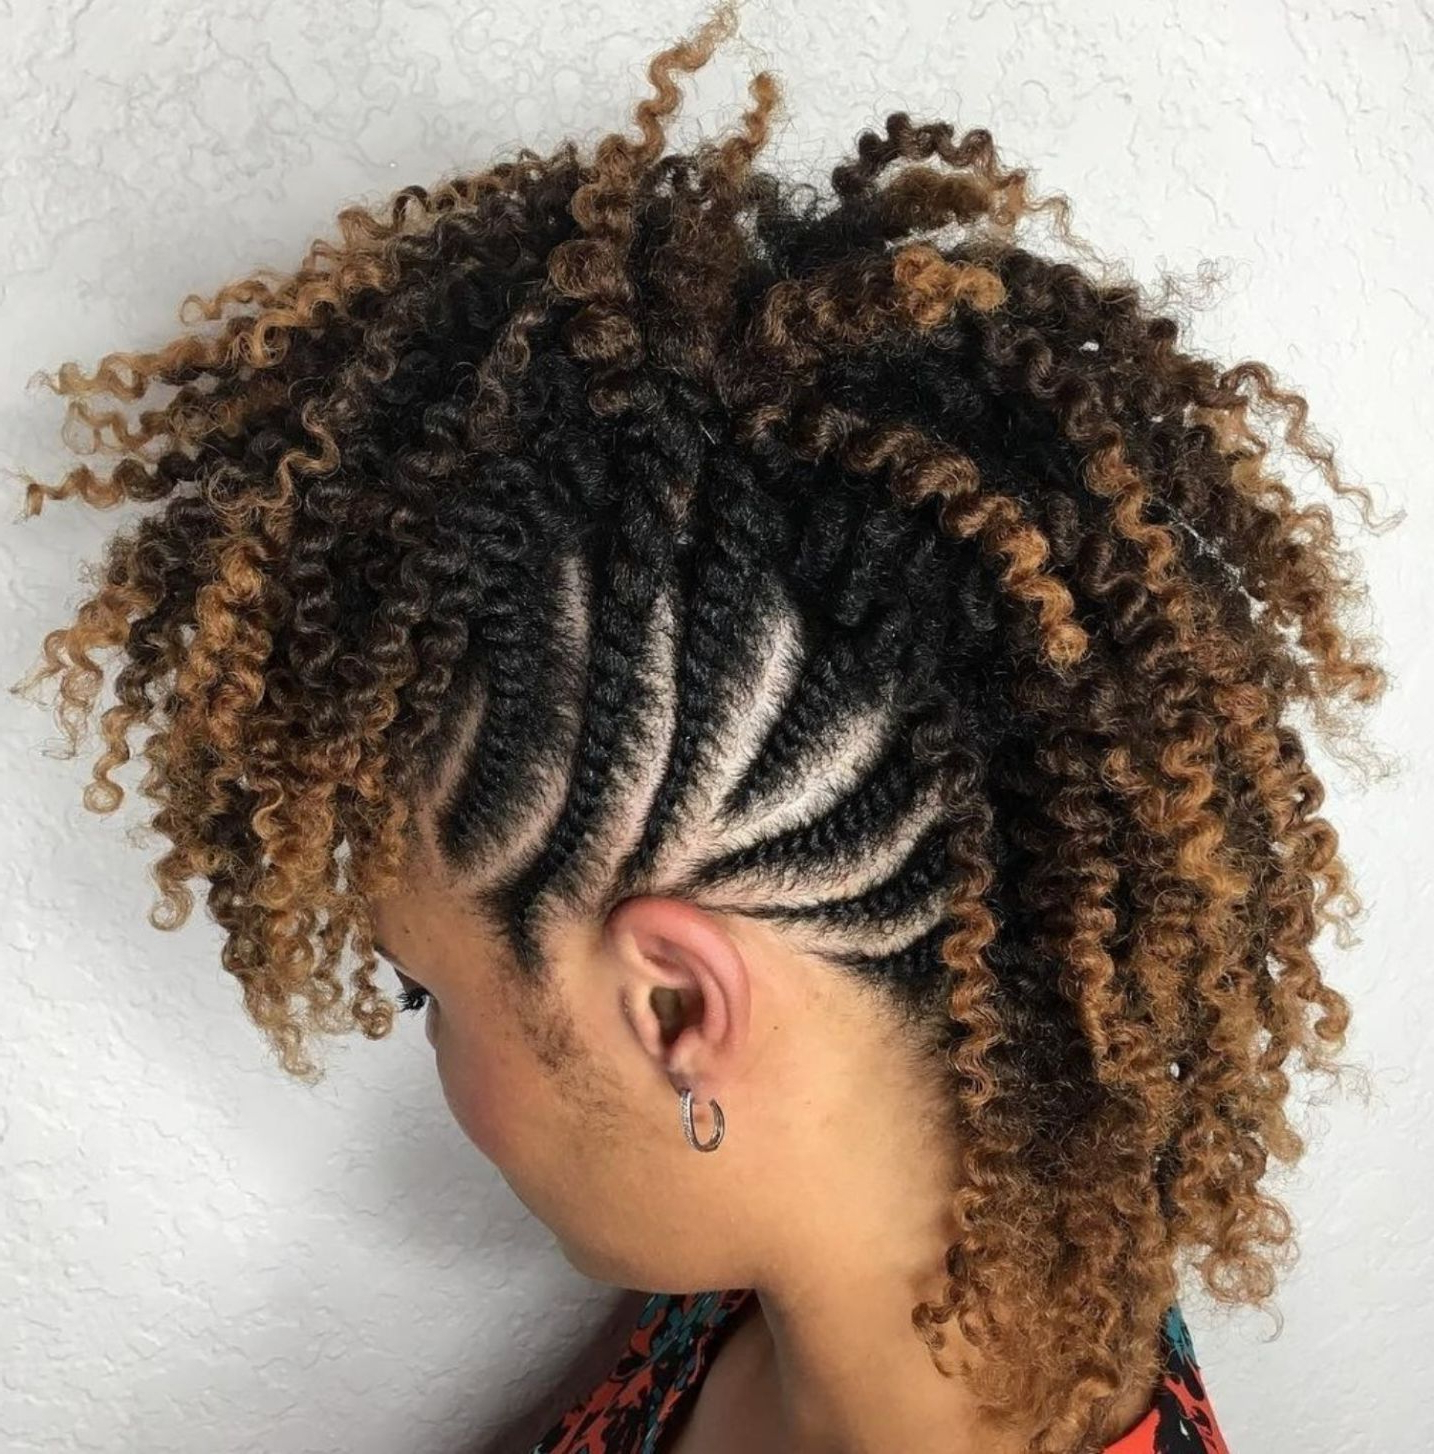 70 Best Black Braided Hairstyles That Turn Heads In 2019 Pertaining To Trendy Twist Curl Mohawk Hairstyles (Gallery 3 of 20)